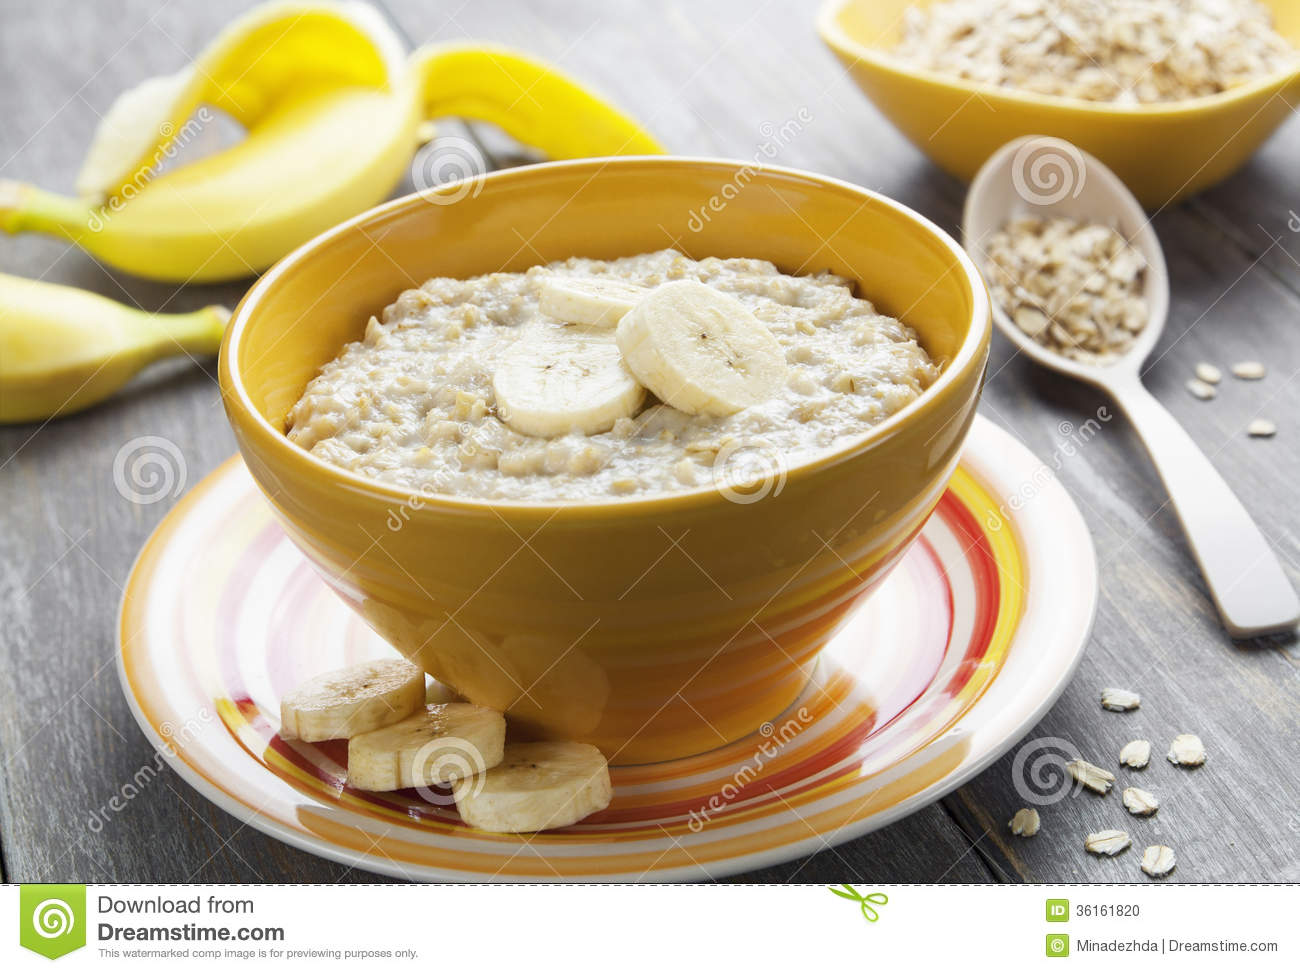 Porridge With Bananas In A Yellow Bowl On The Table